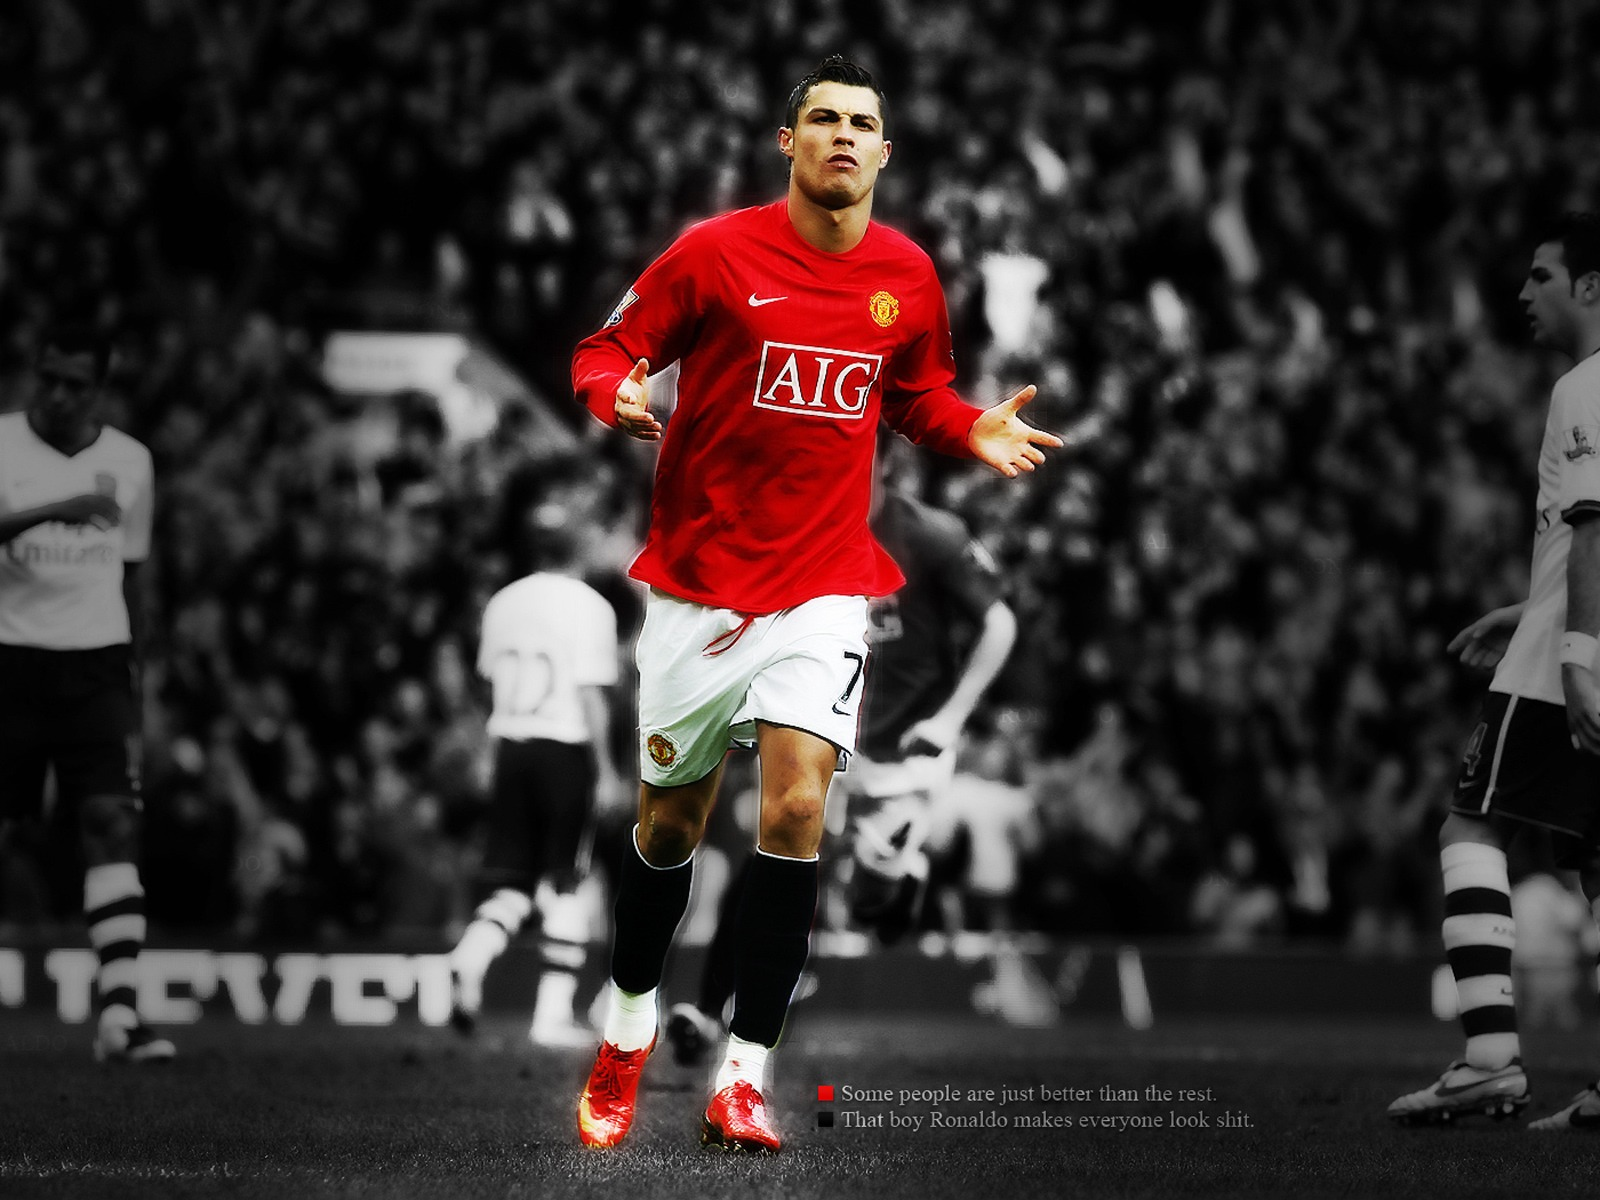 10 Best <b>Cristiano Ronaldo HD</b> Wallpapers 2014 - YouTube